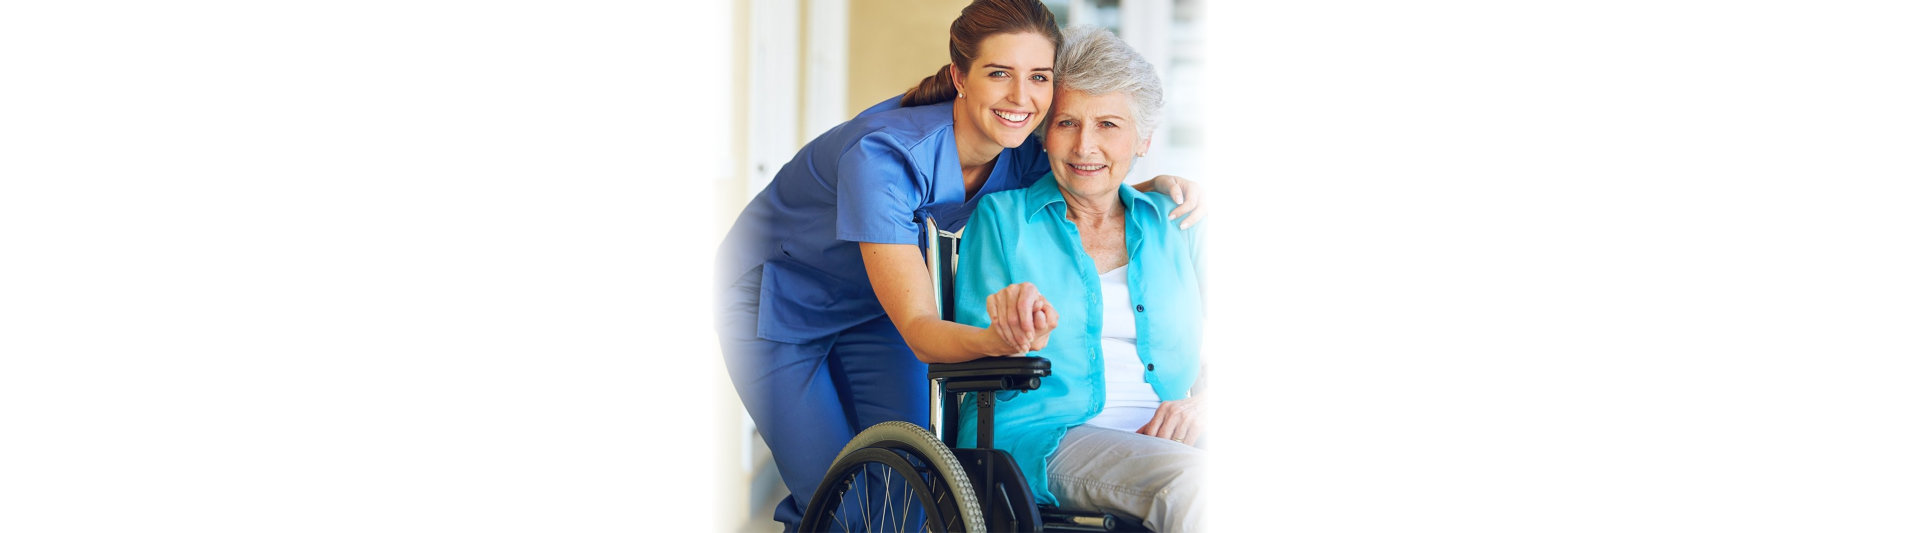 caregiver and elderwoman smiling